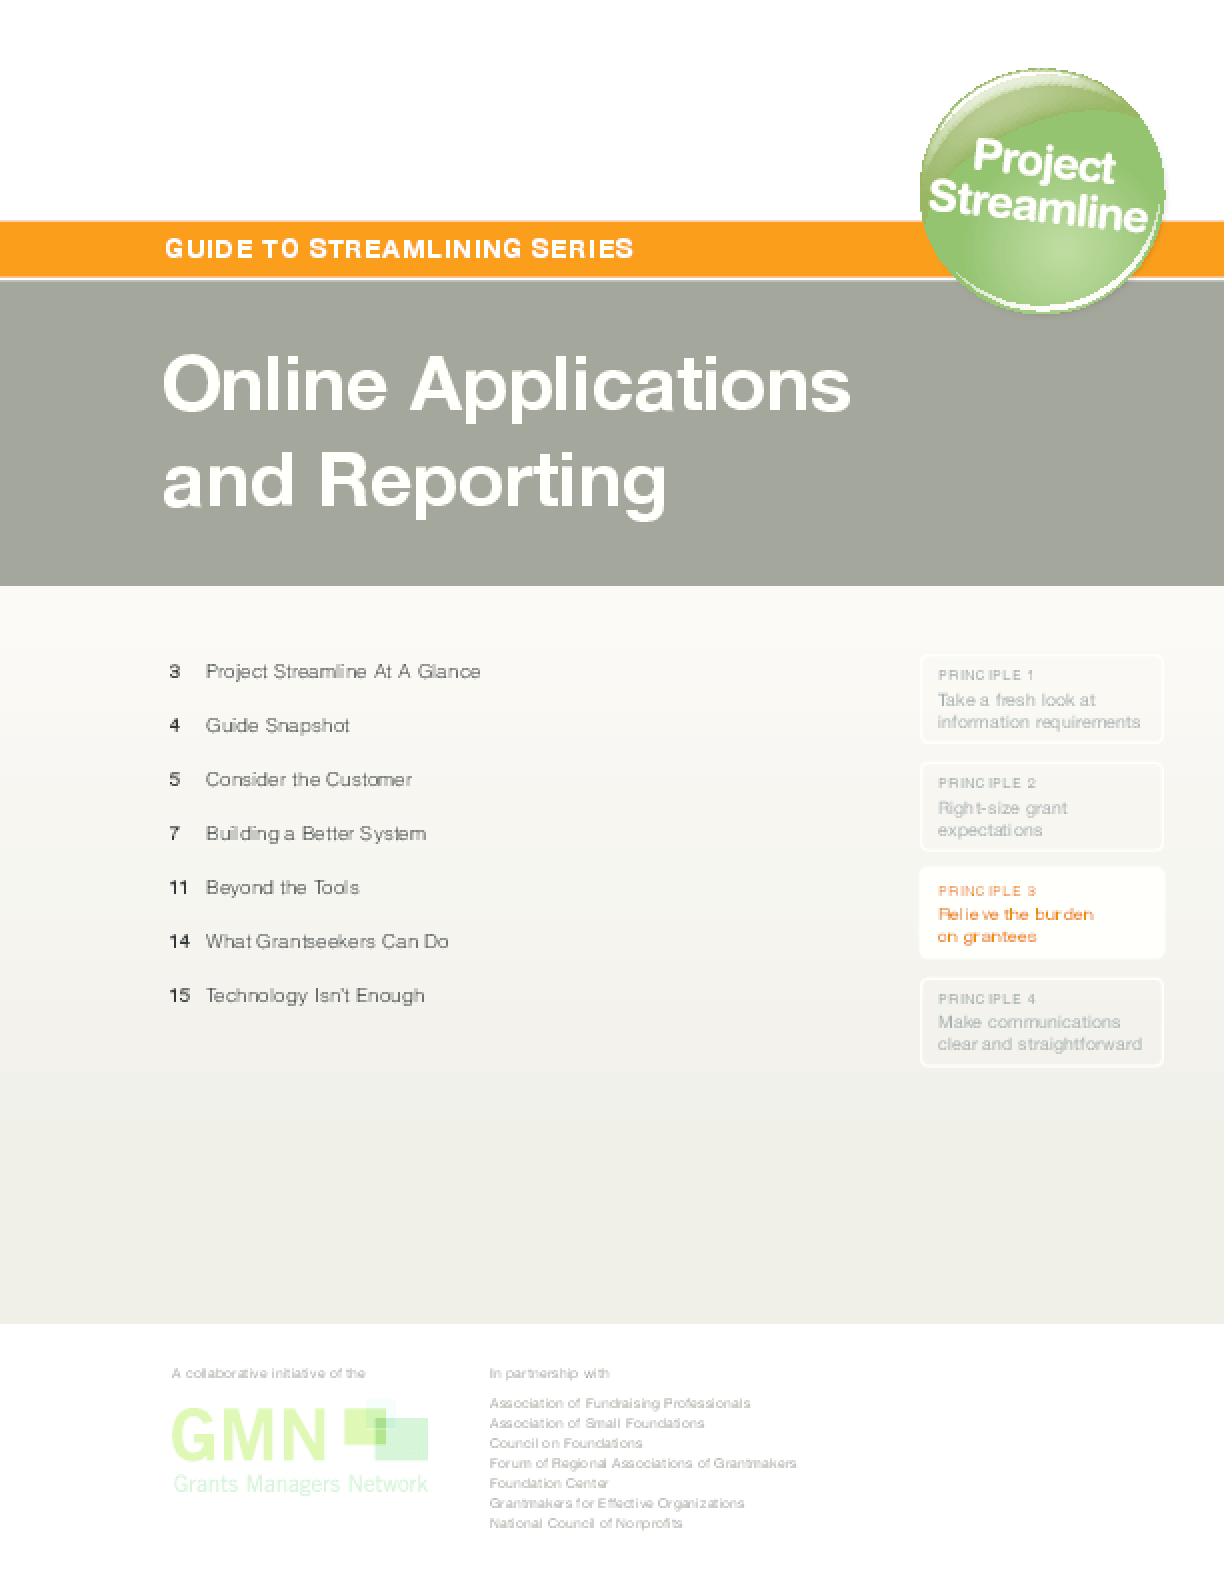 Guide to Streamlining Series: Online Applications and Reporting